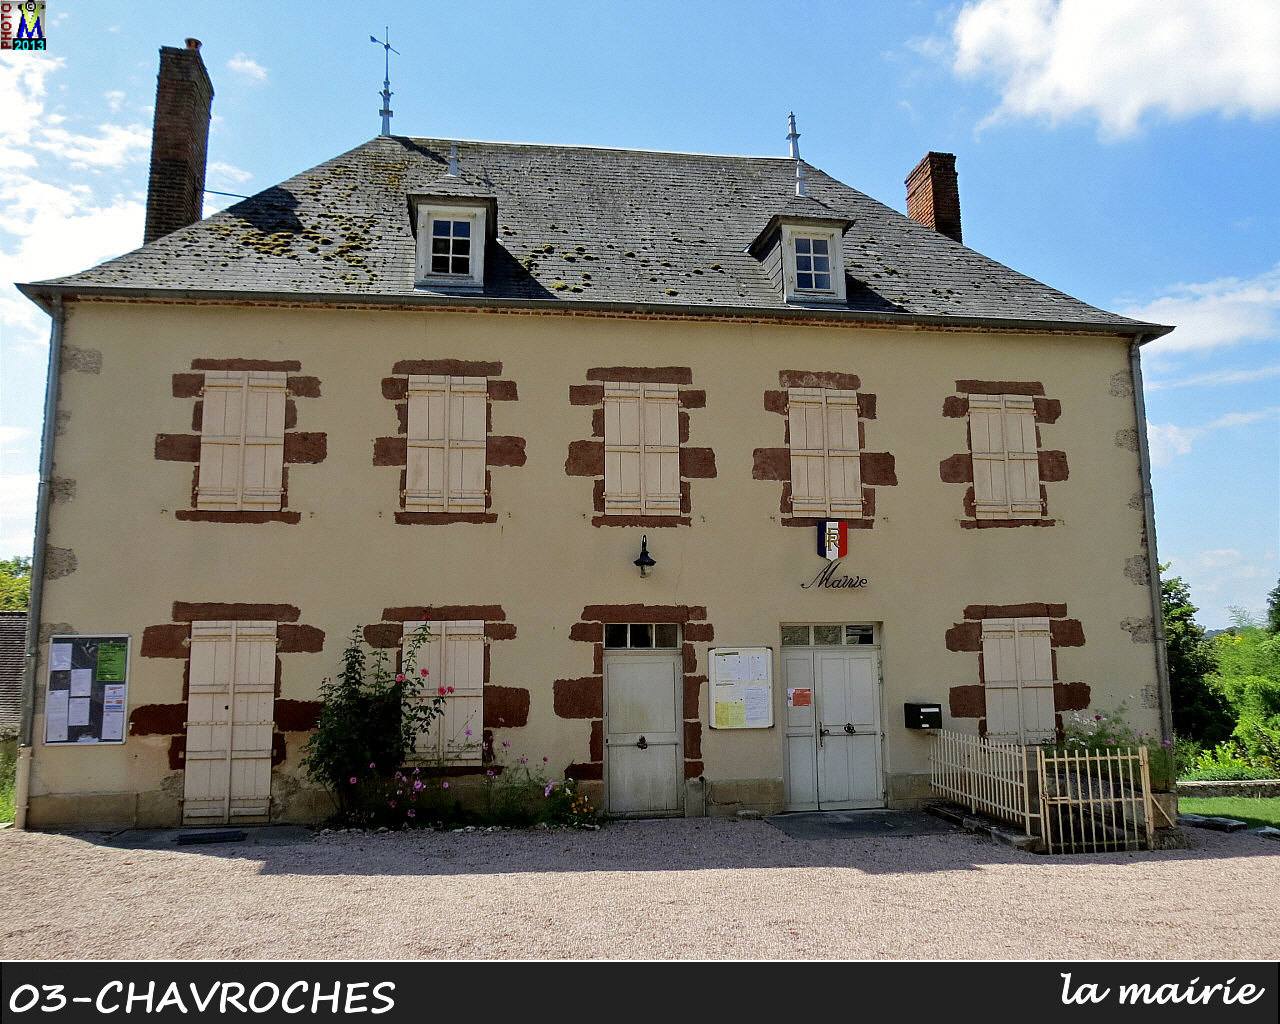 03CHAVROCHES_mairie_100.jpg